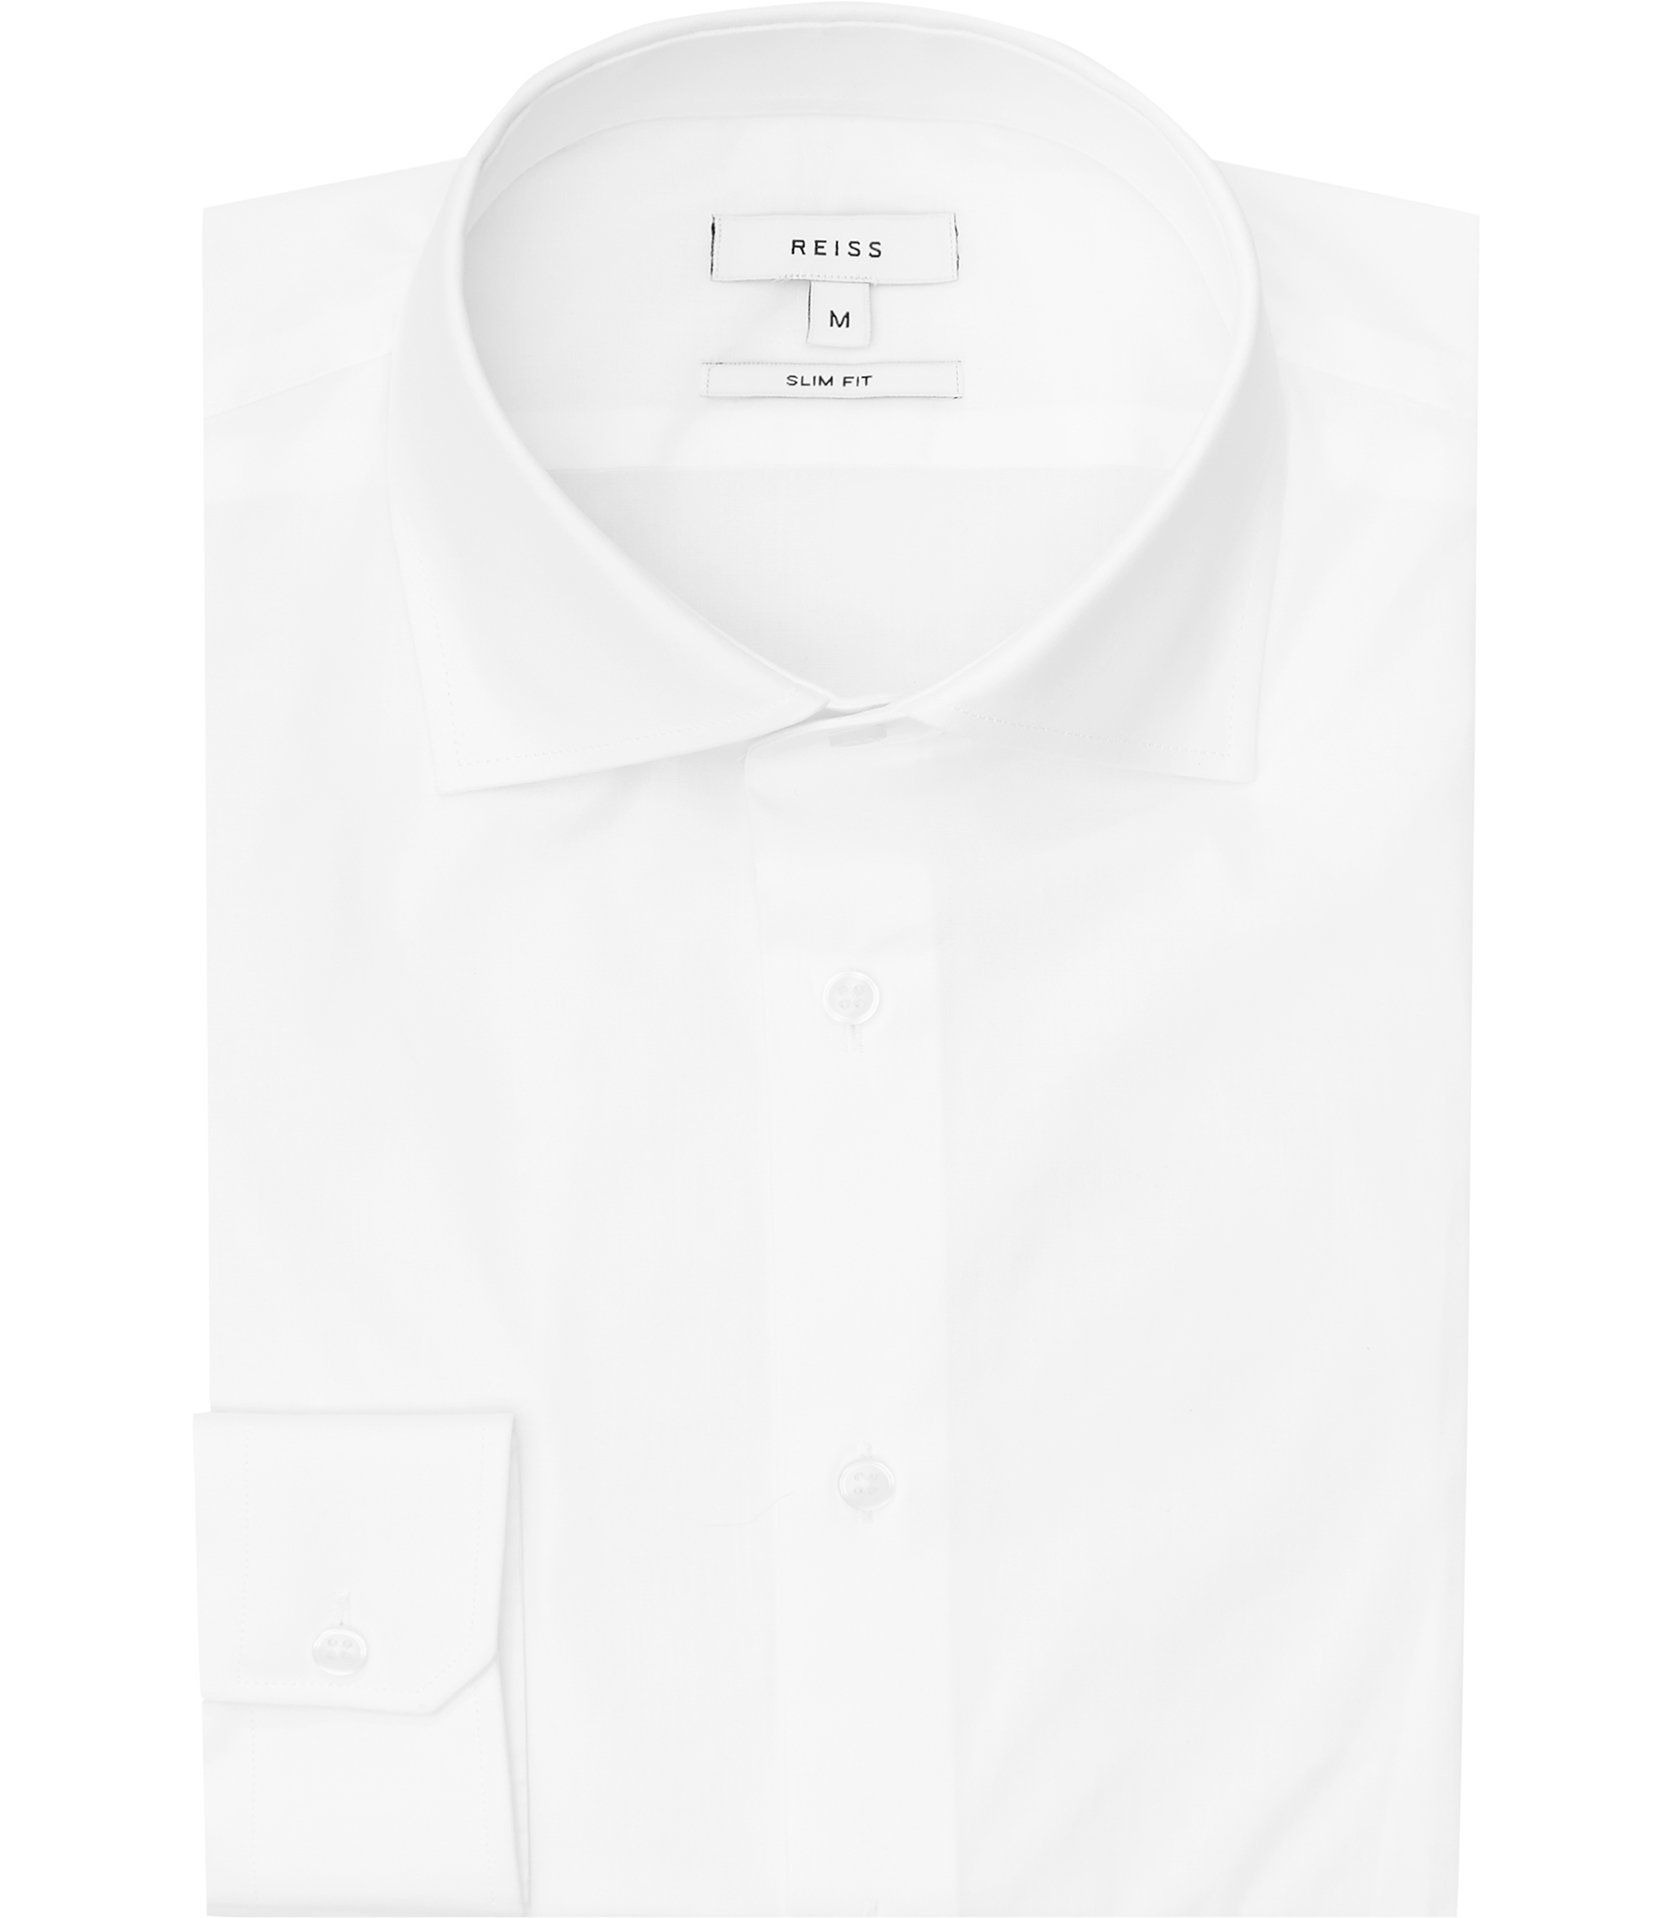 Reiss White Oxide Slim-Fit Stretch Shirt